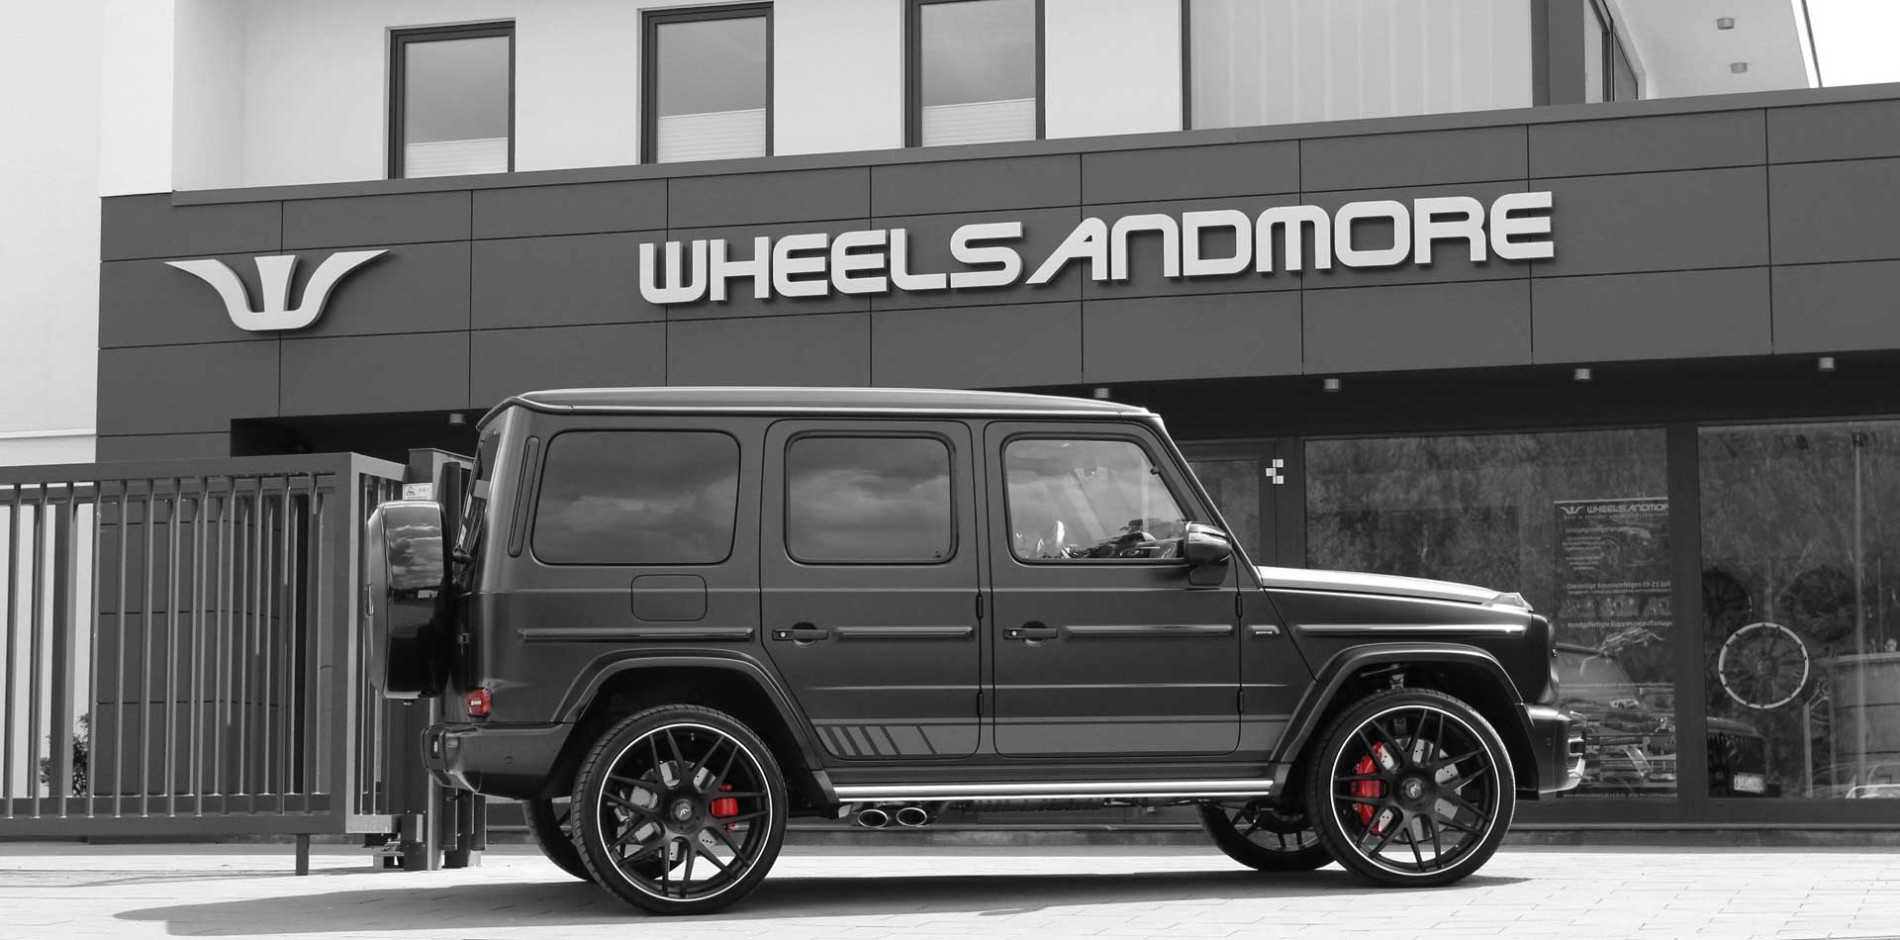 Mercedes-AMG G63 Wheelsandmore - Mercedes-AMG G63 Wheelsandmore